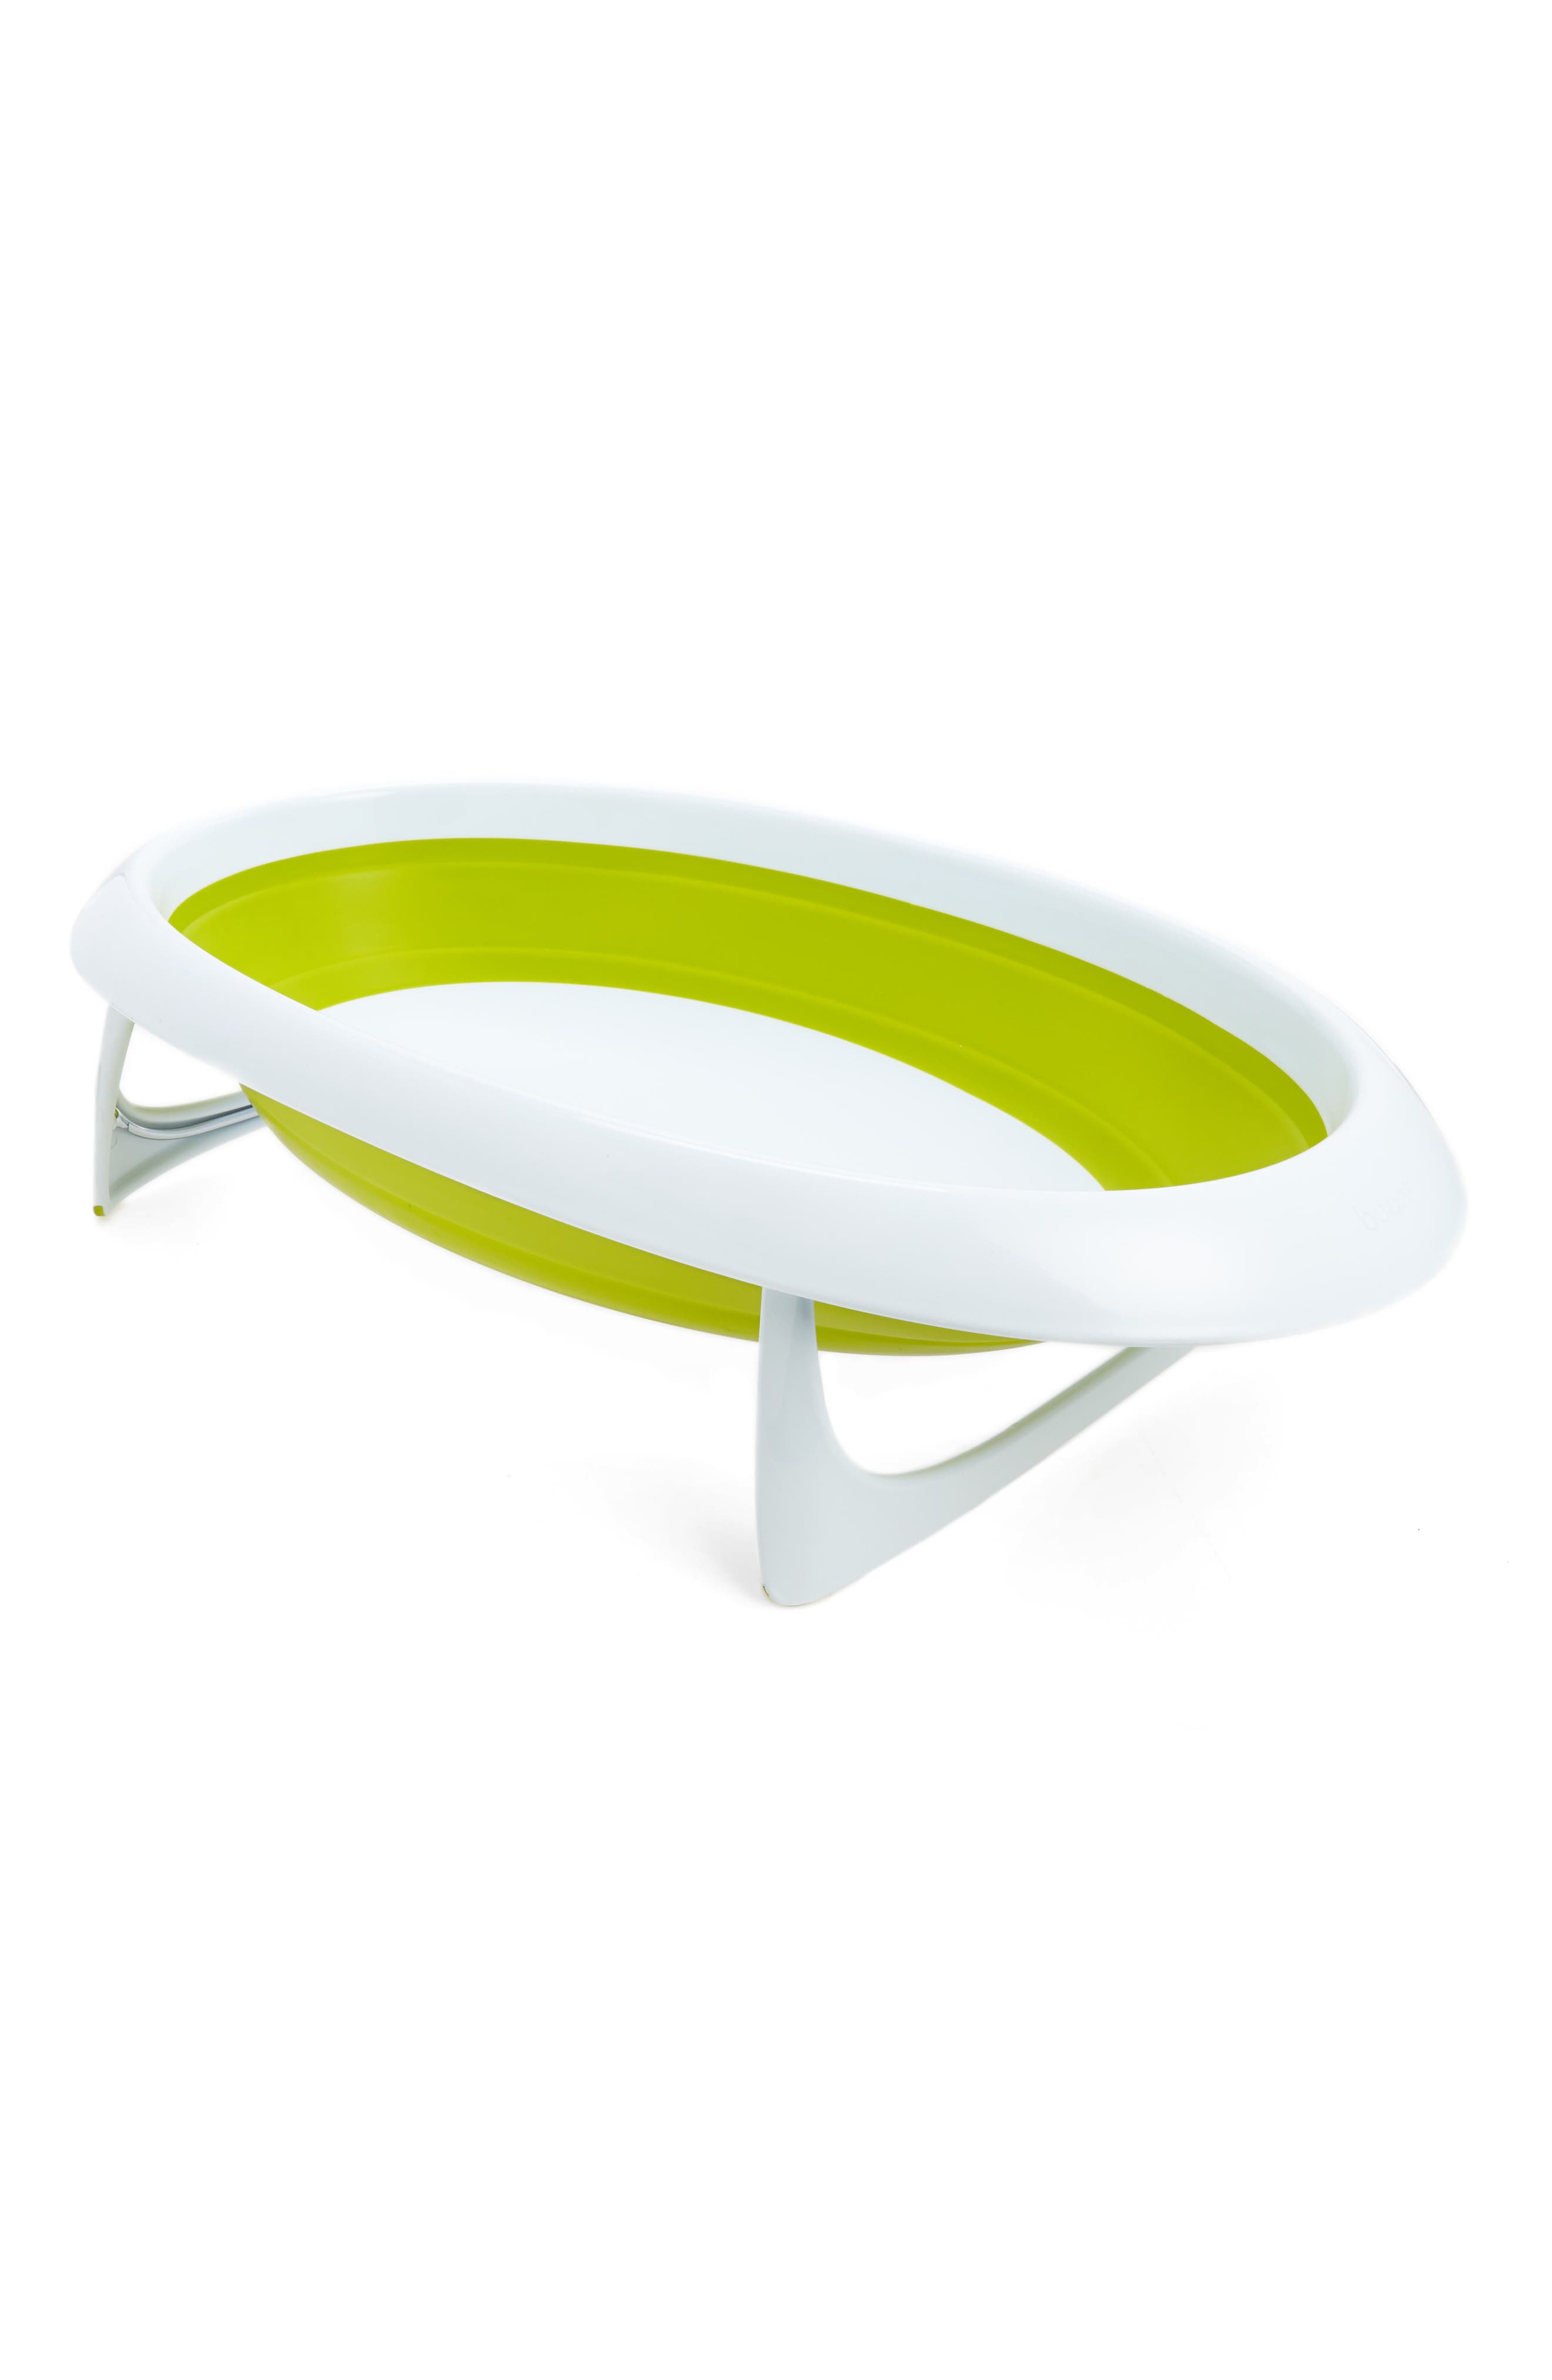 Boon 'Naked' Collapsible Bathtub